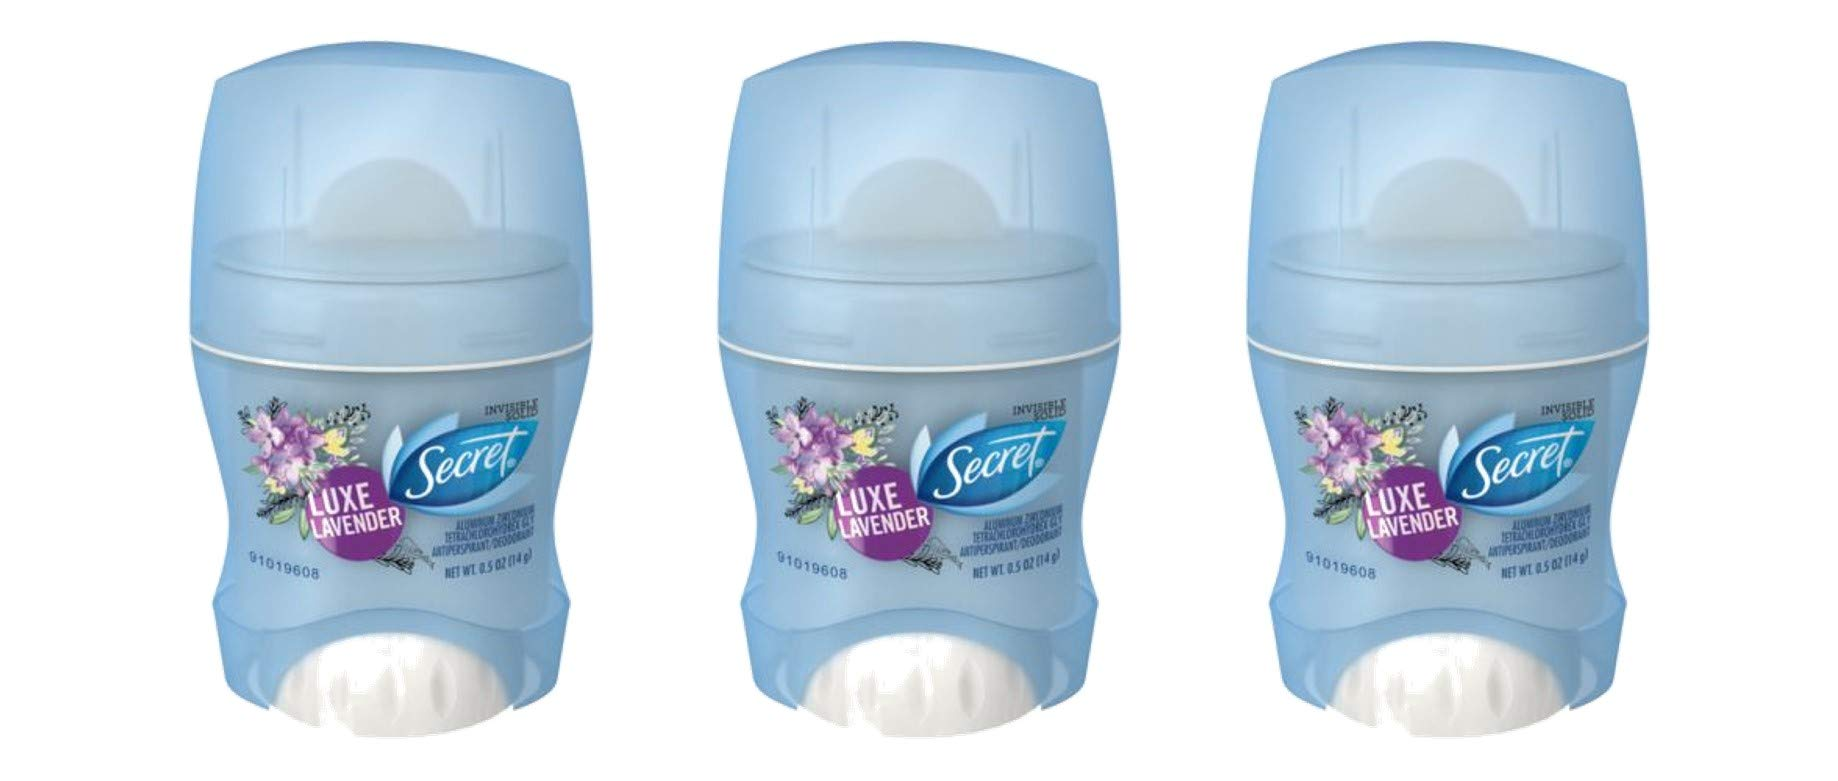 Secret Luxe Lavender Scent Invisible Solid Antiperspirant Deodorant 0.5 Ounce Travel Size (Pack of 3)